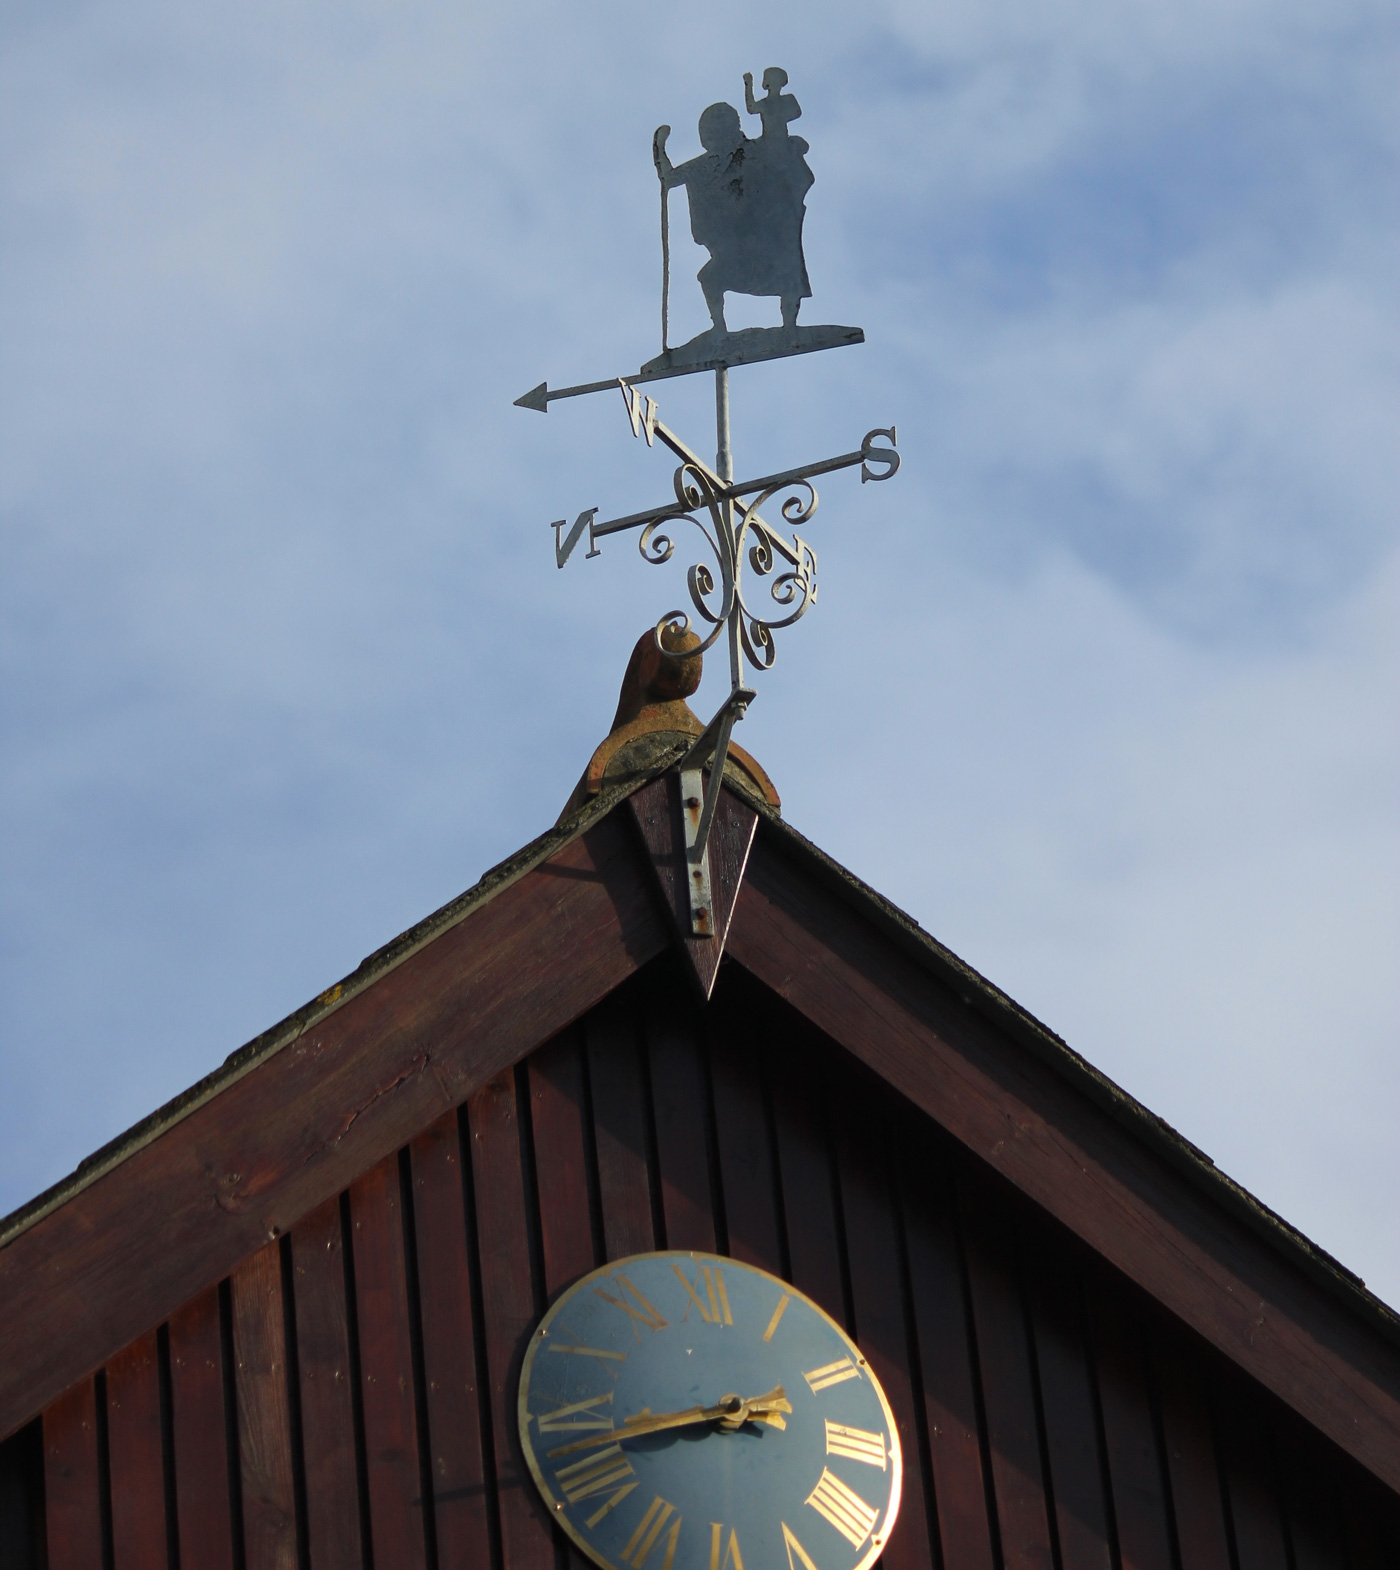 The weathervane above the school clock, named Old Sir after former Headmaster, Maurice Saunders